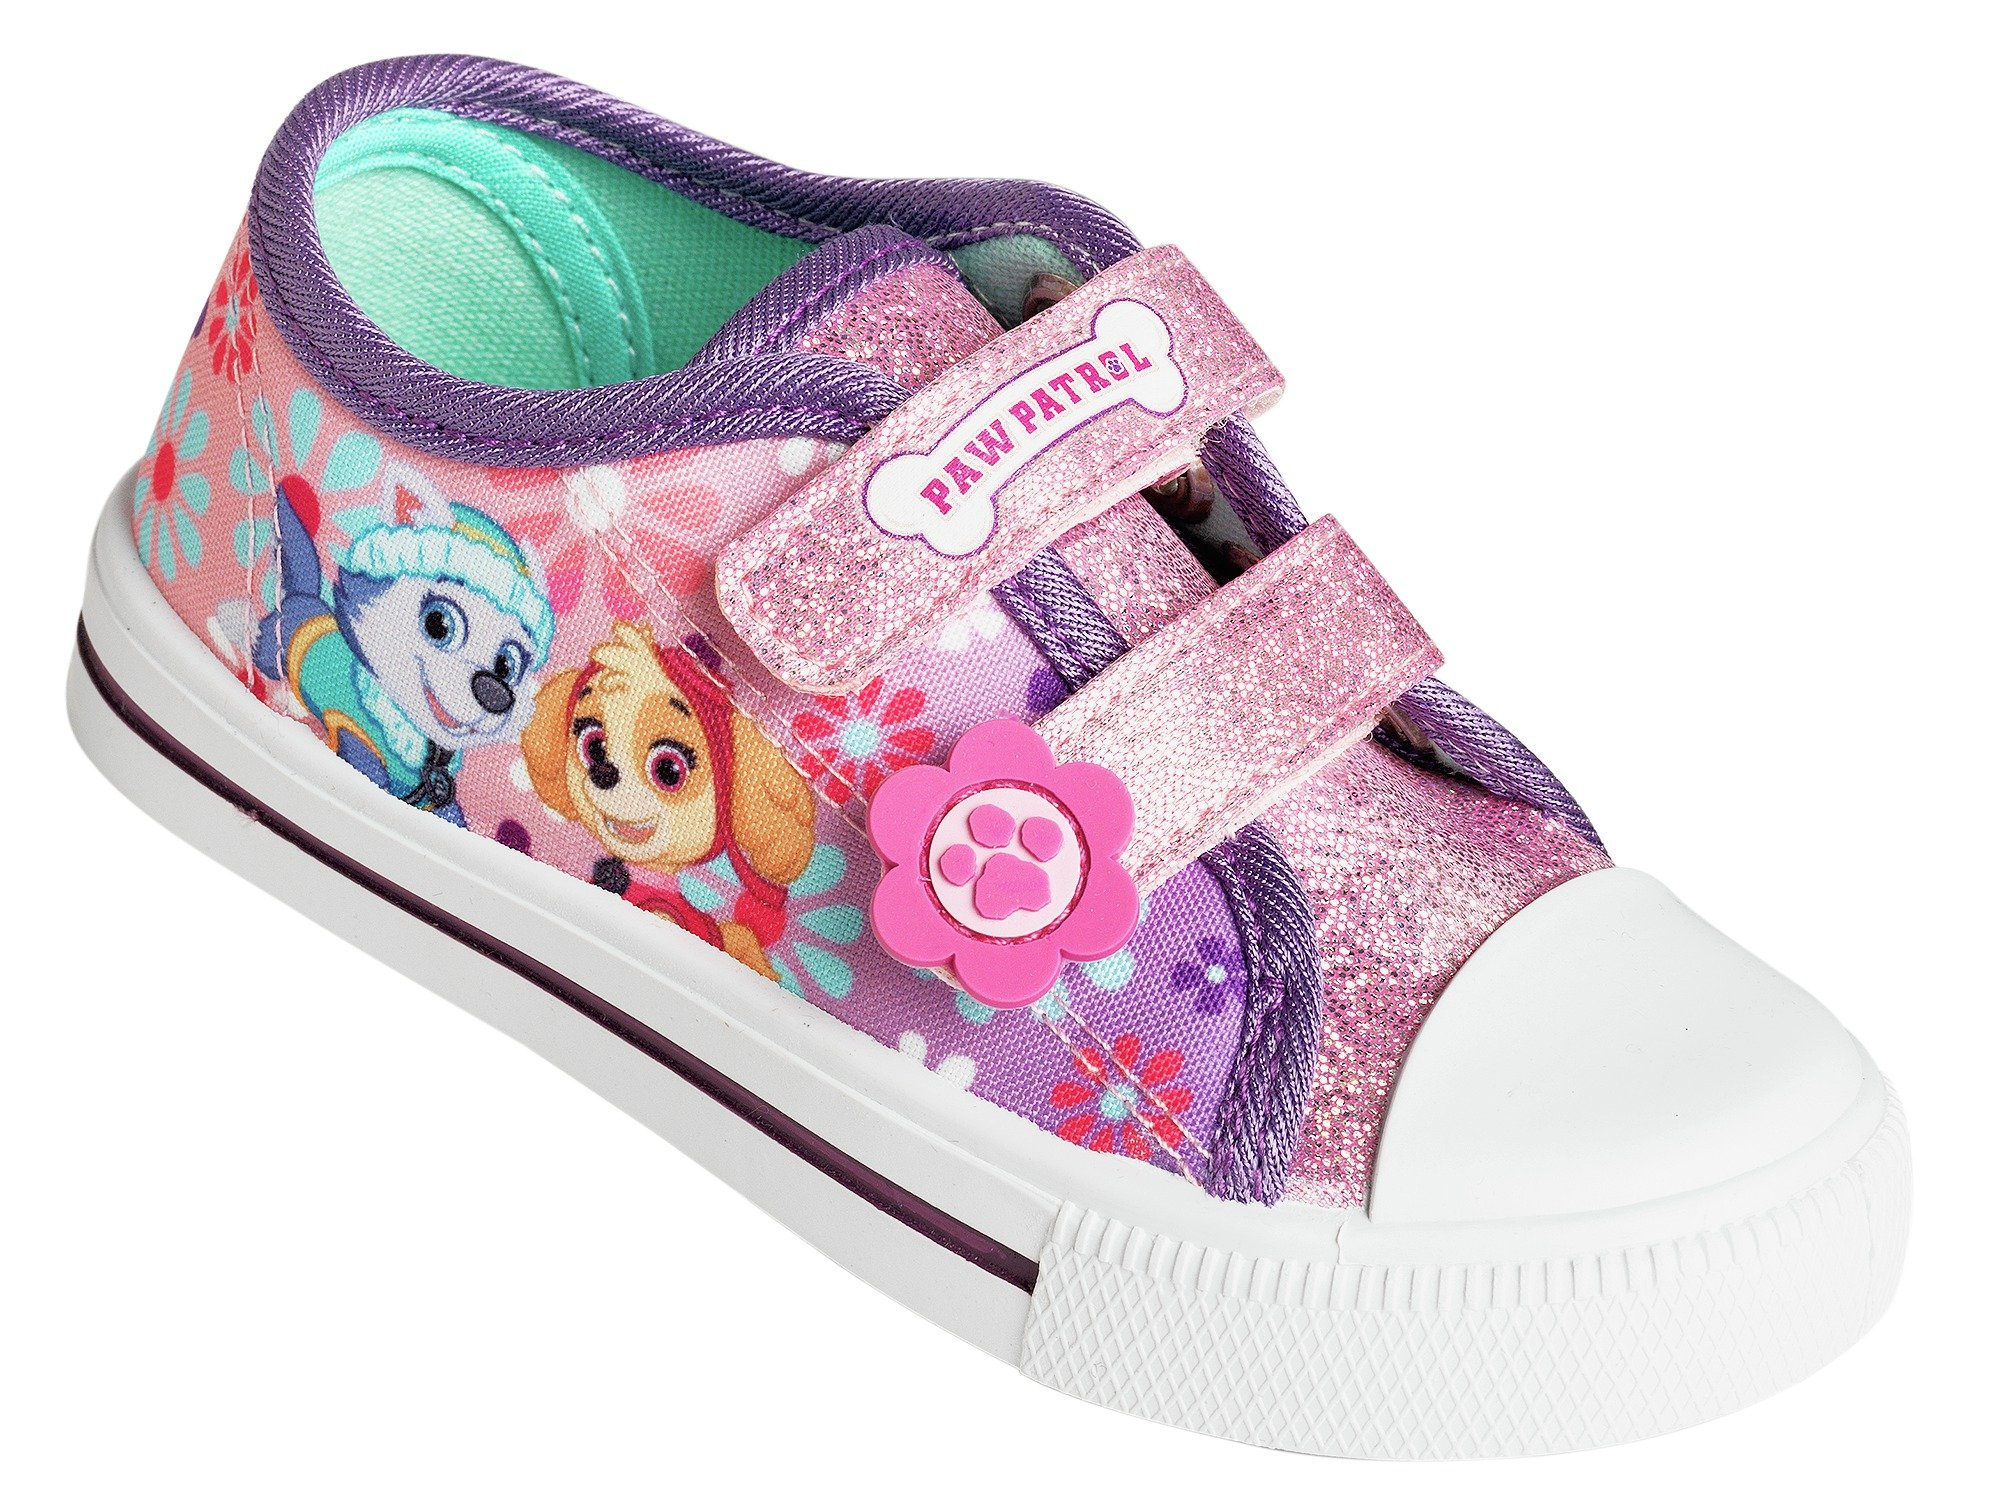 Image of PAW Patrol Pink Canvas Trainers - Size 9